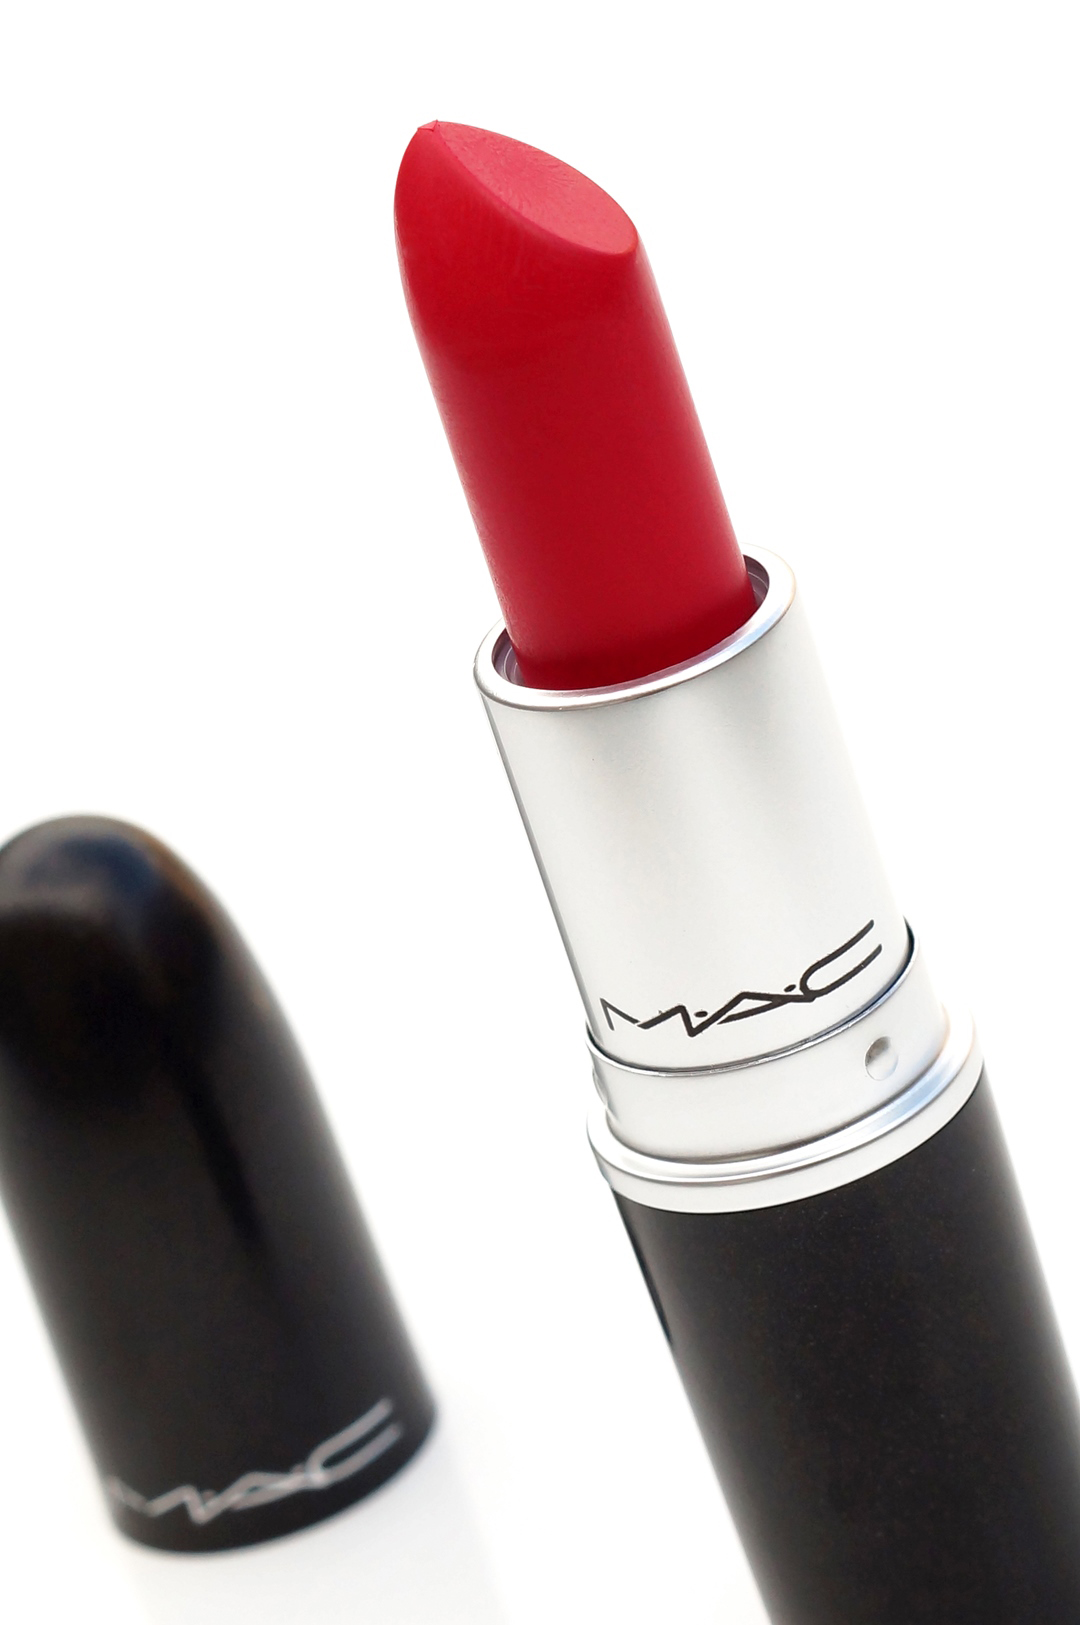 MAC-Retro-matte-relentlessly-red-review-swatches-look (7)